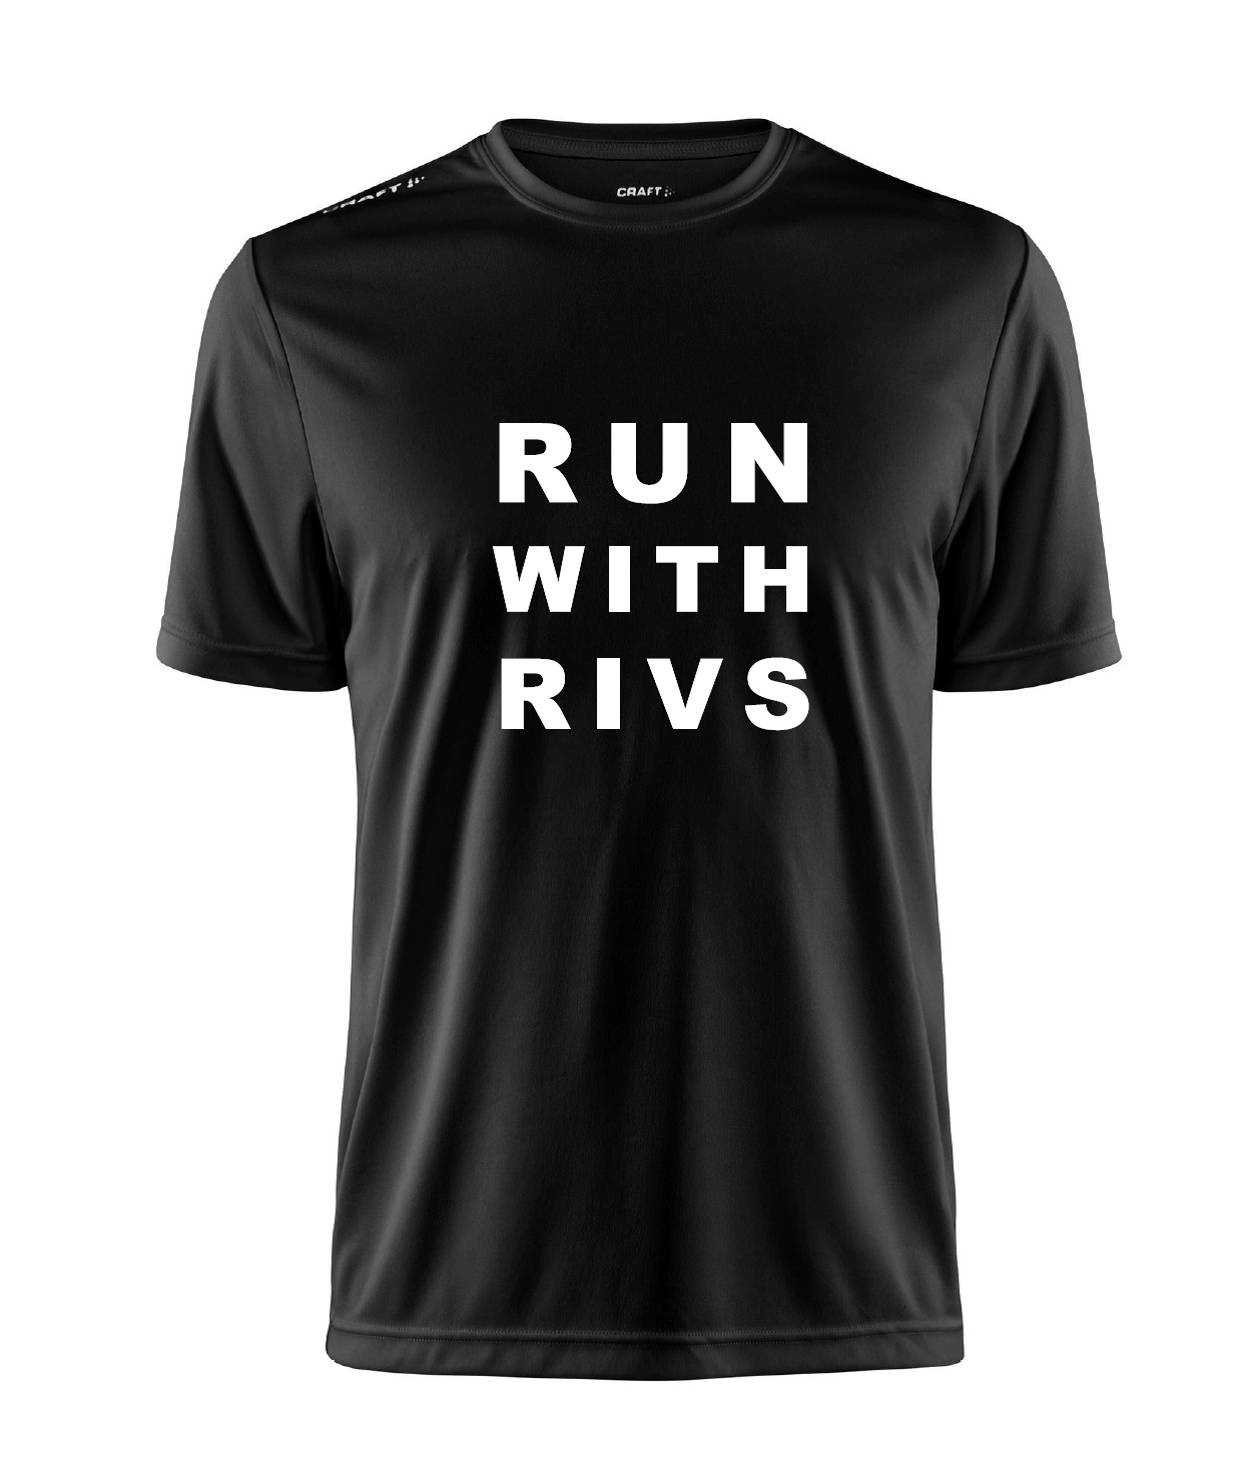 Run with Rivs Benefit Tshirt